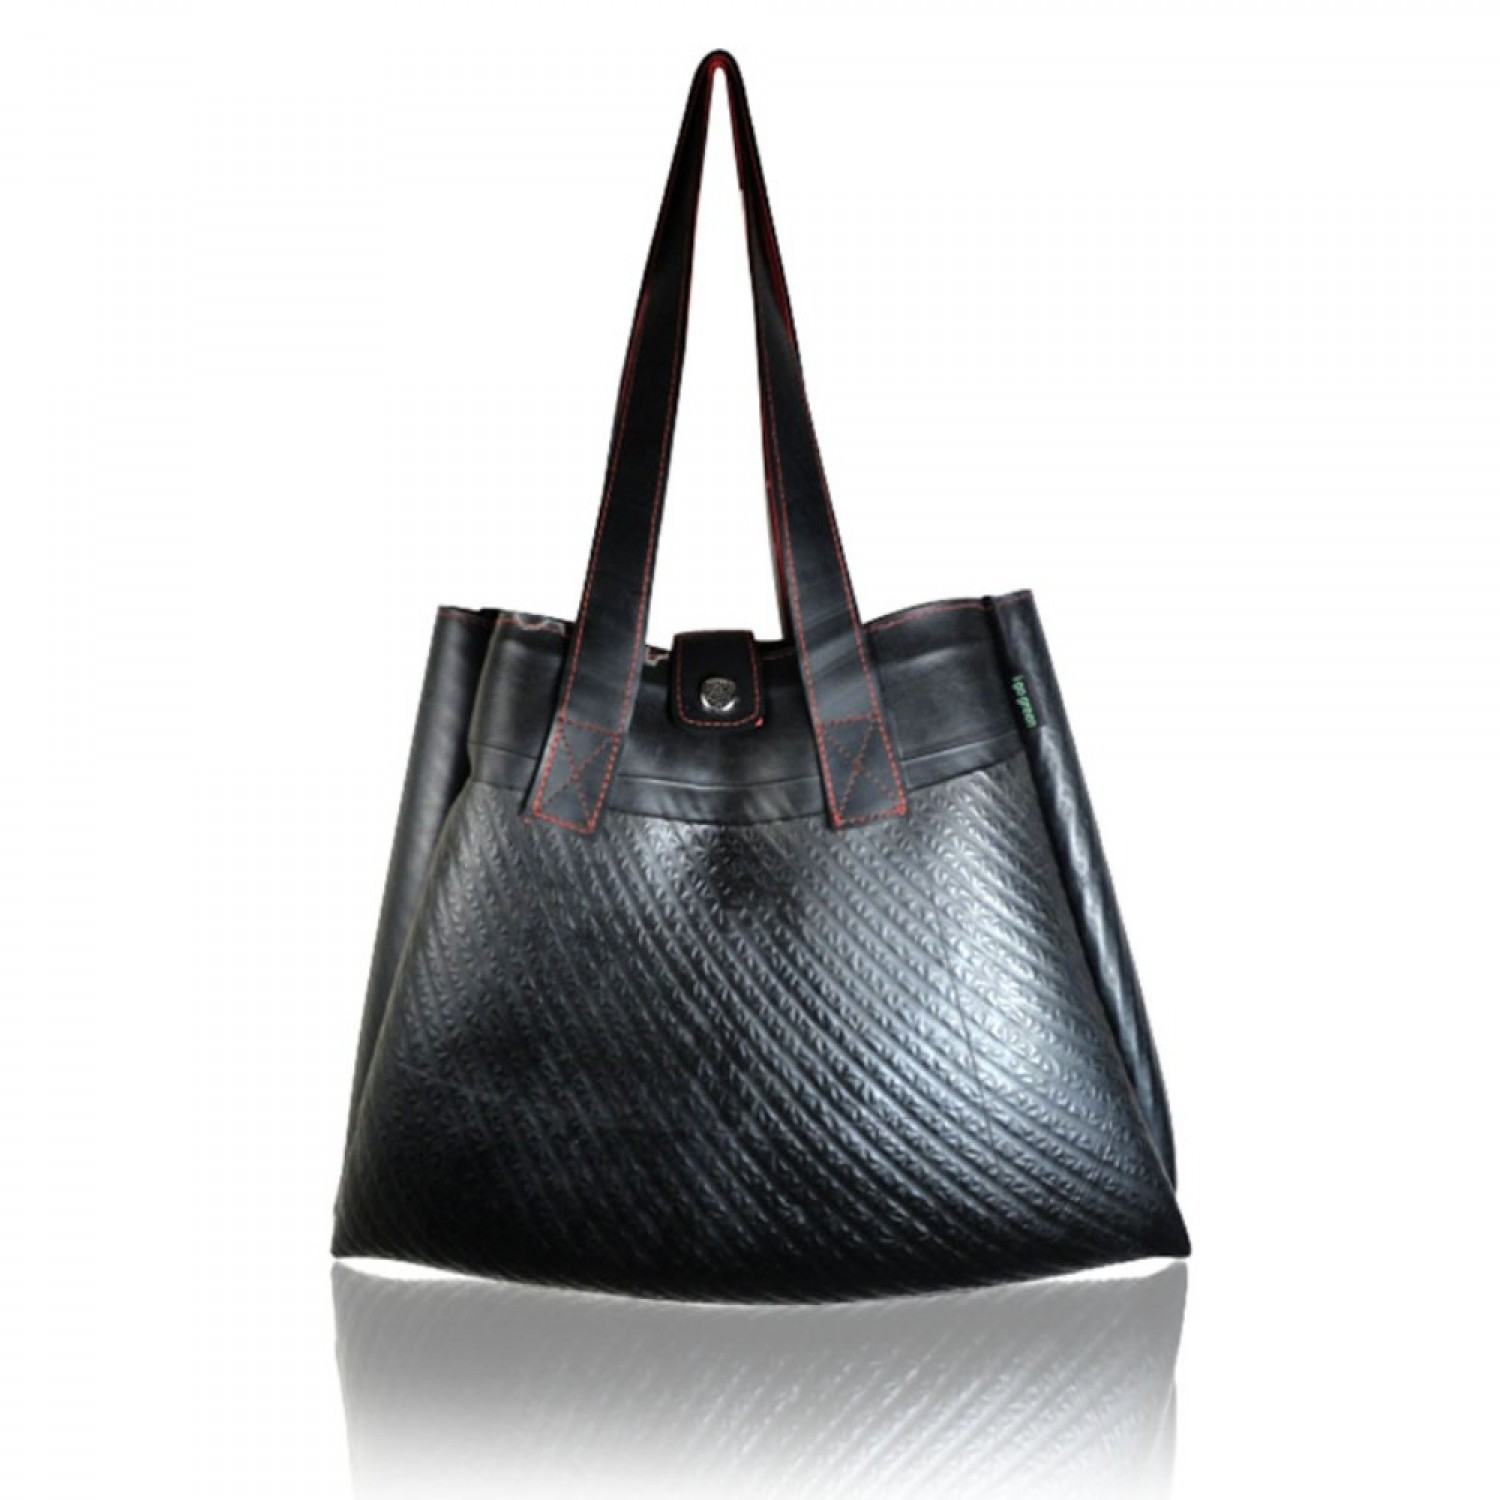 Elegant handbag from tire tubes 'Rocklane' | Ecowings